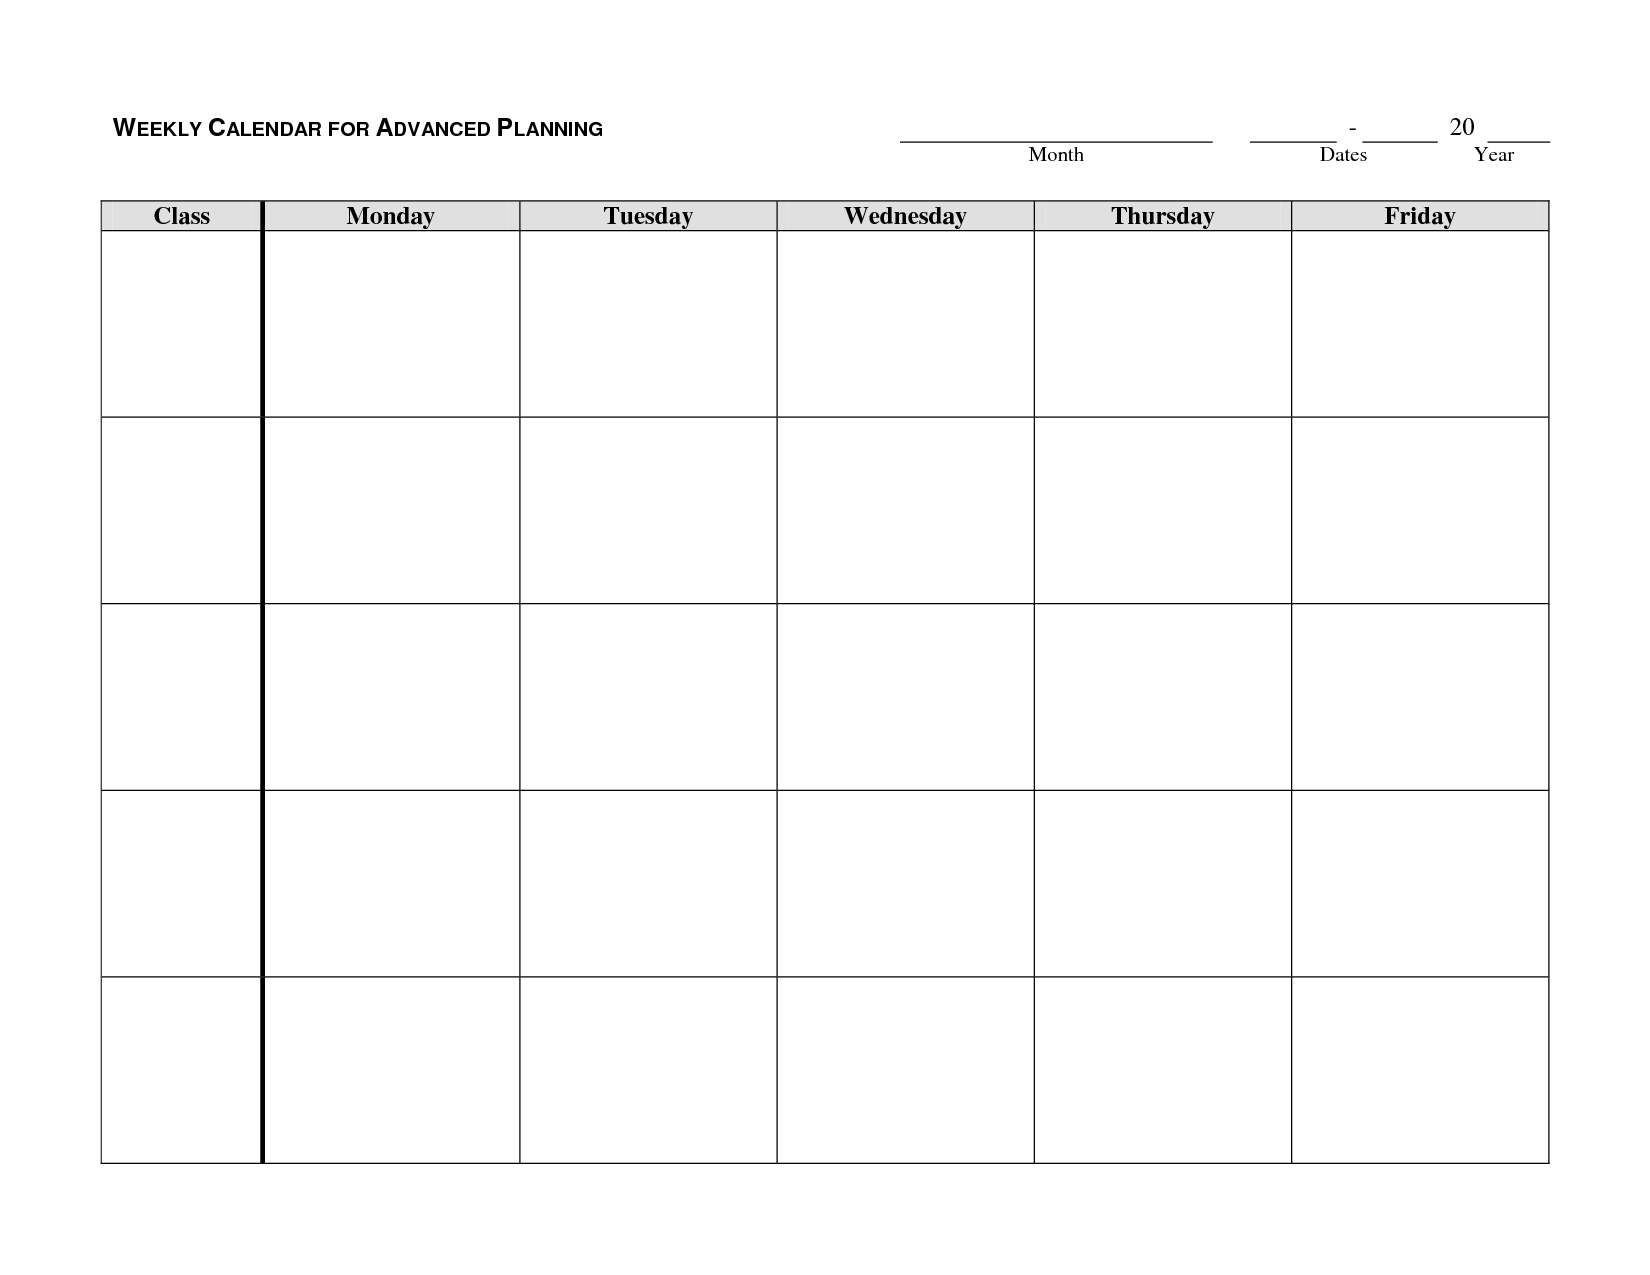 Weekly Calendar Template - Google Search | Autism/school-Monday Through Friday Planning Template